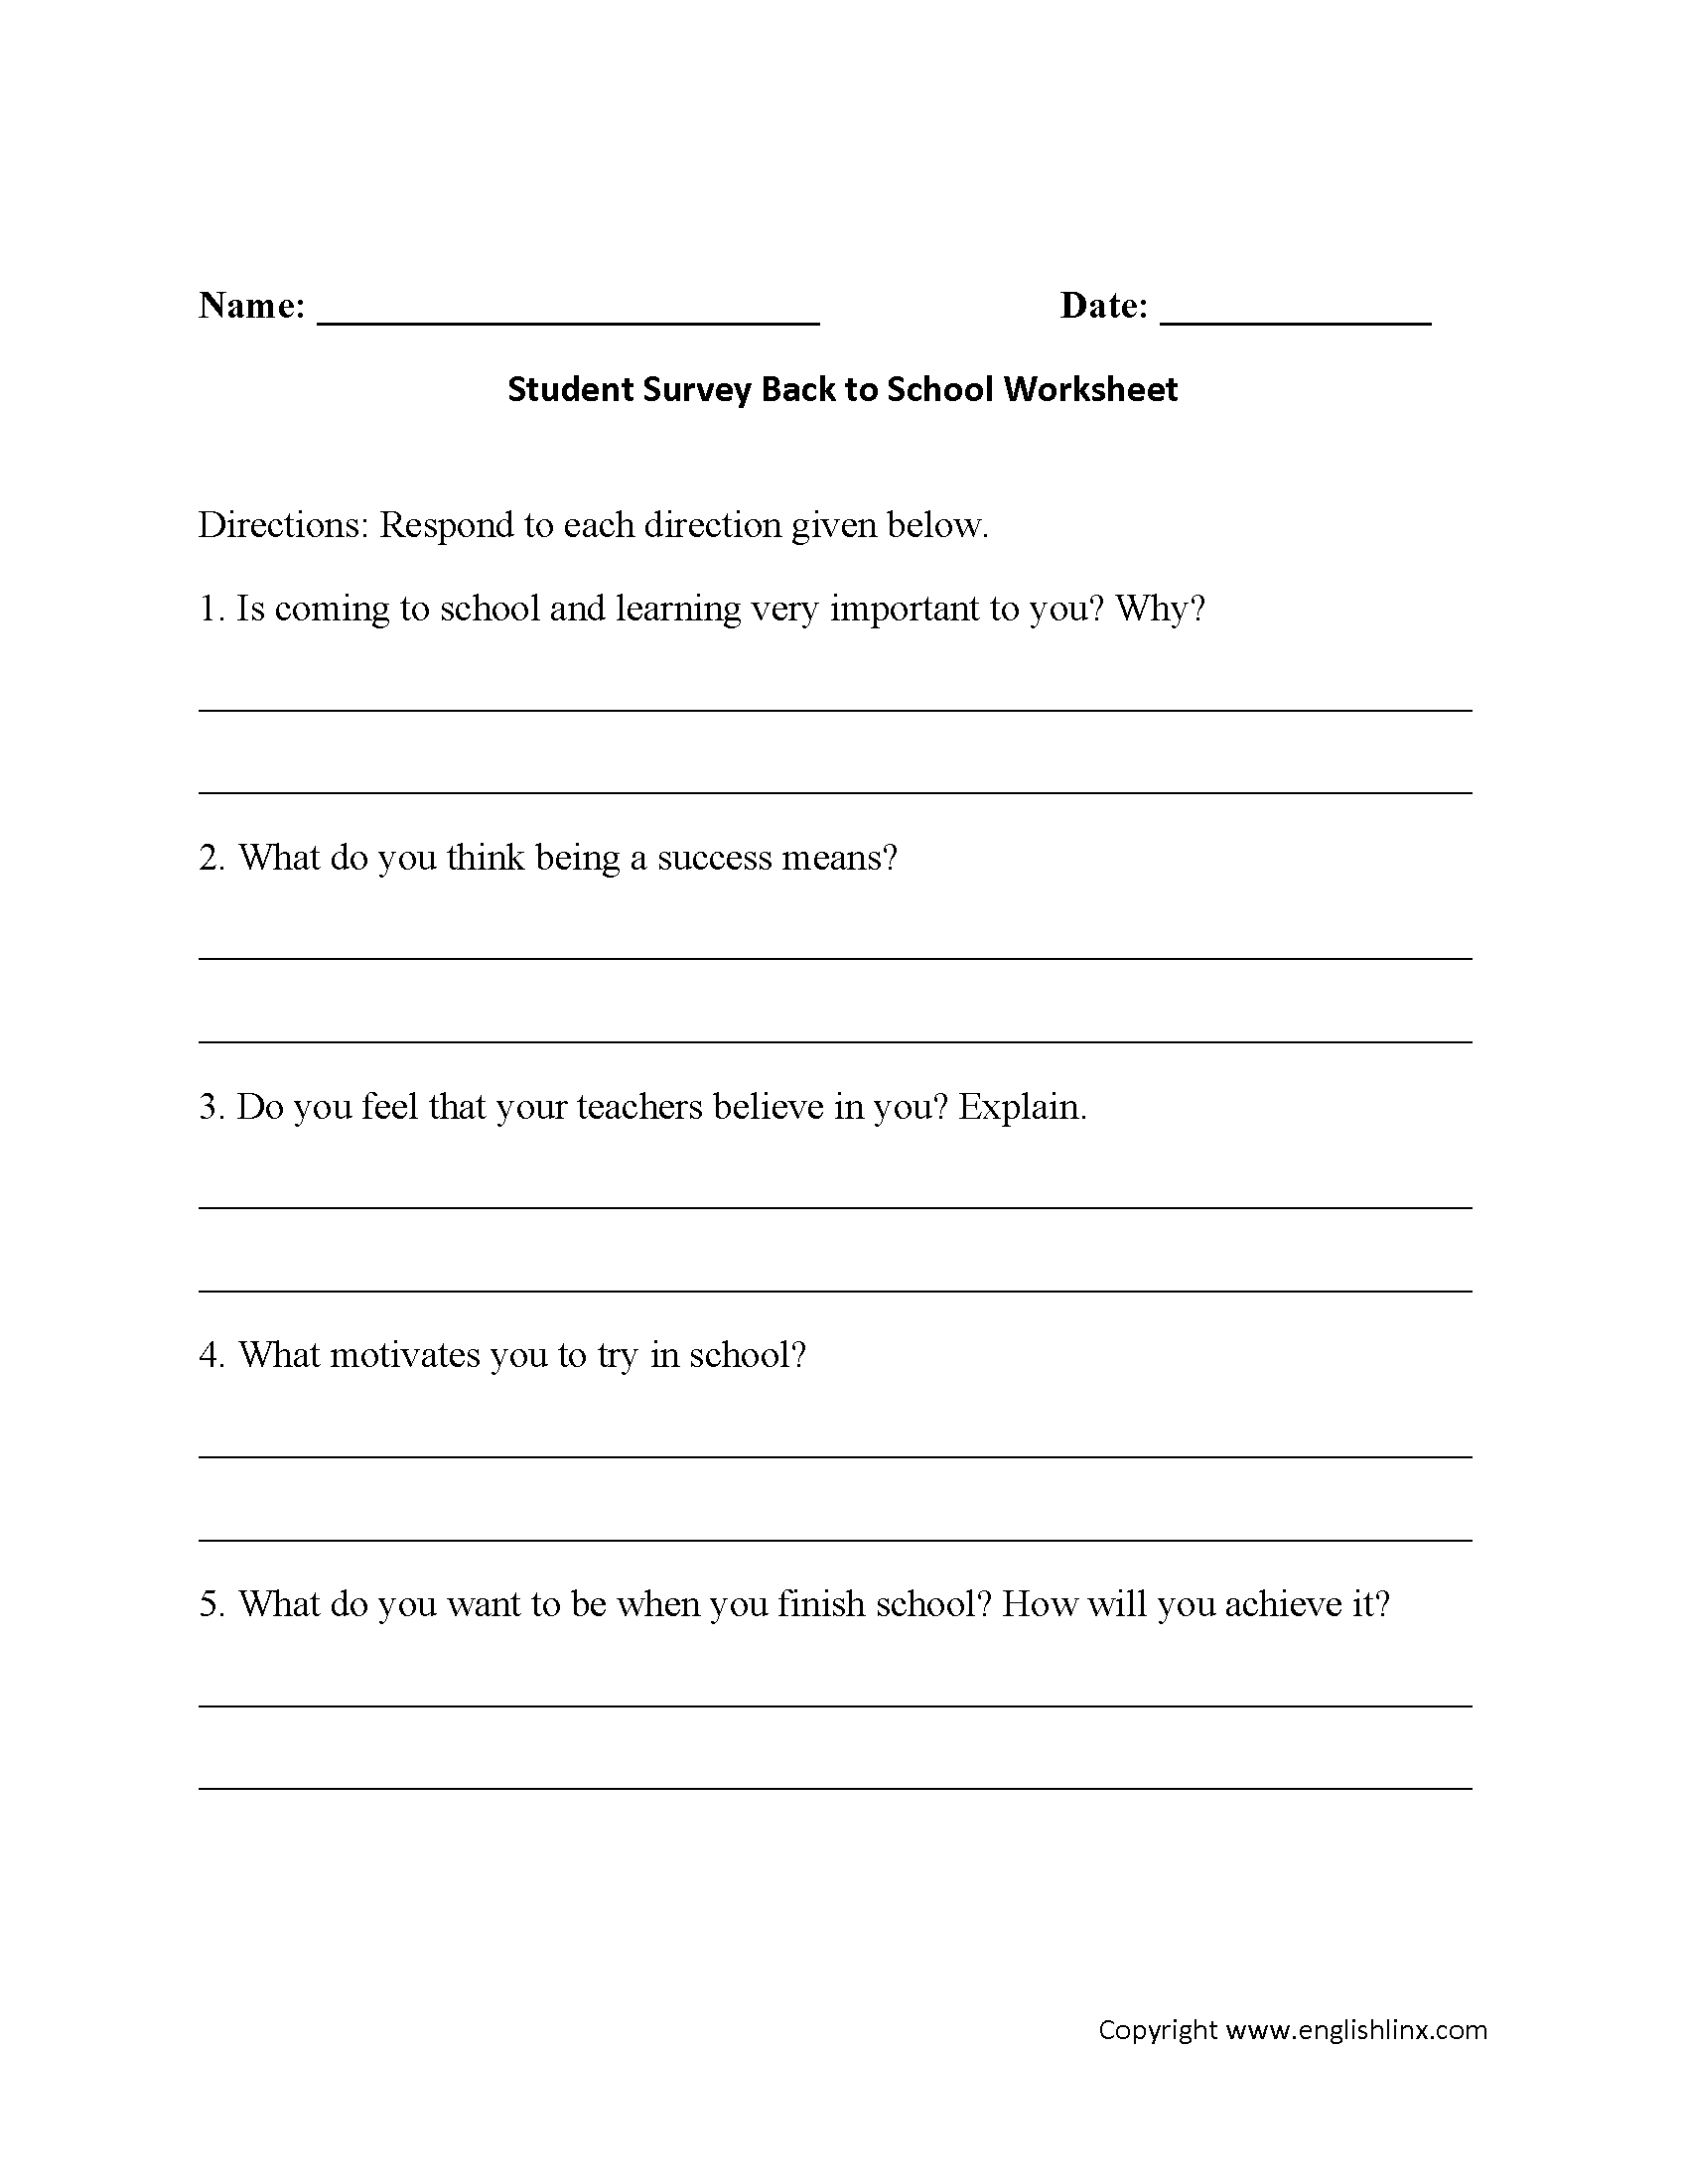 Student Survey Back to School Worksheets